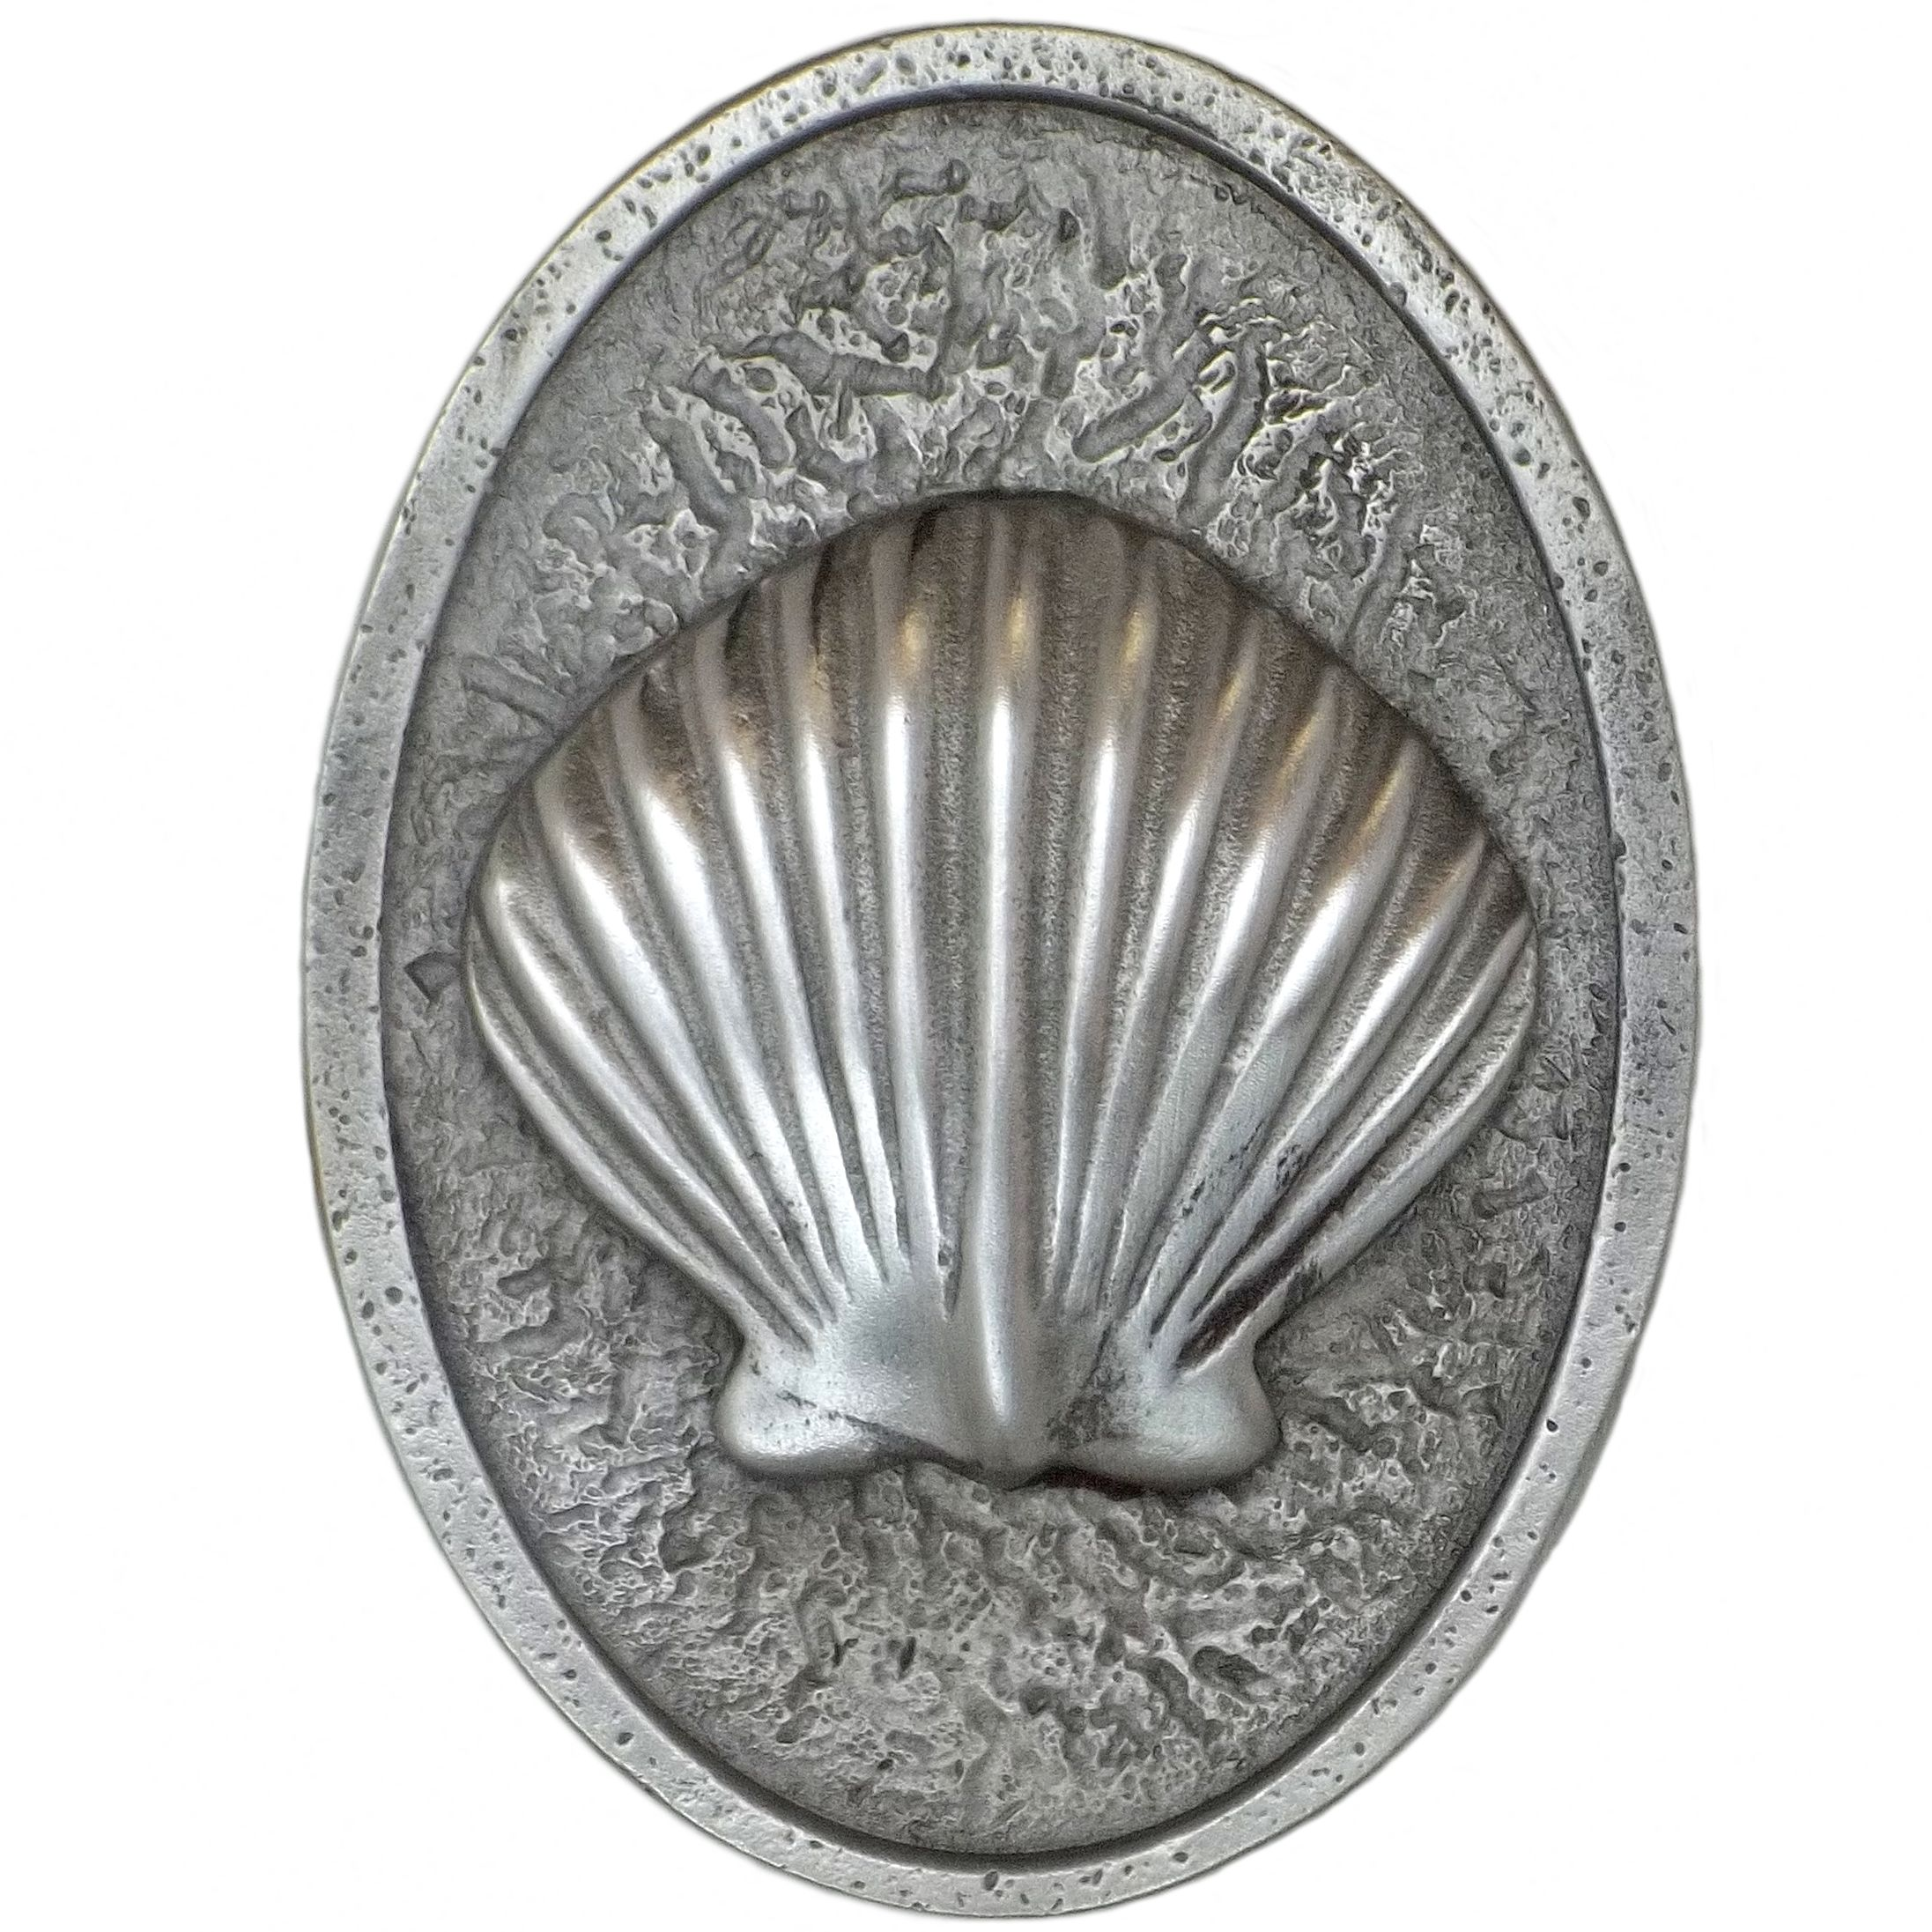 scallop shell drawer knobs cast in pewter shown in. Black Bedroom Furniture Sets. Home Design Ideas